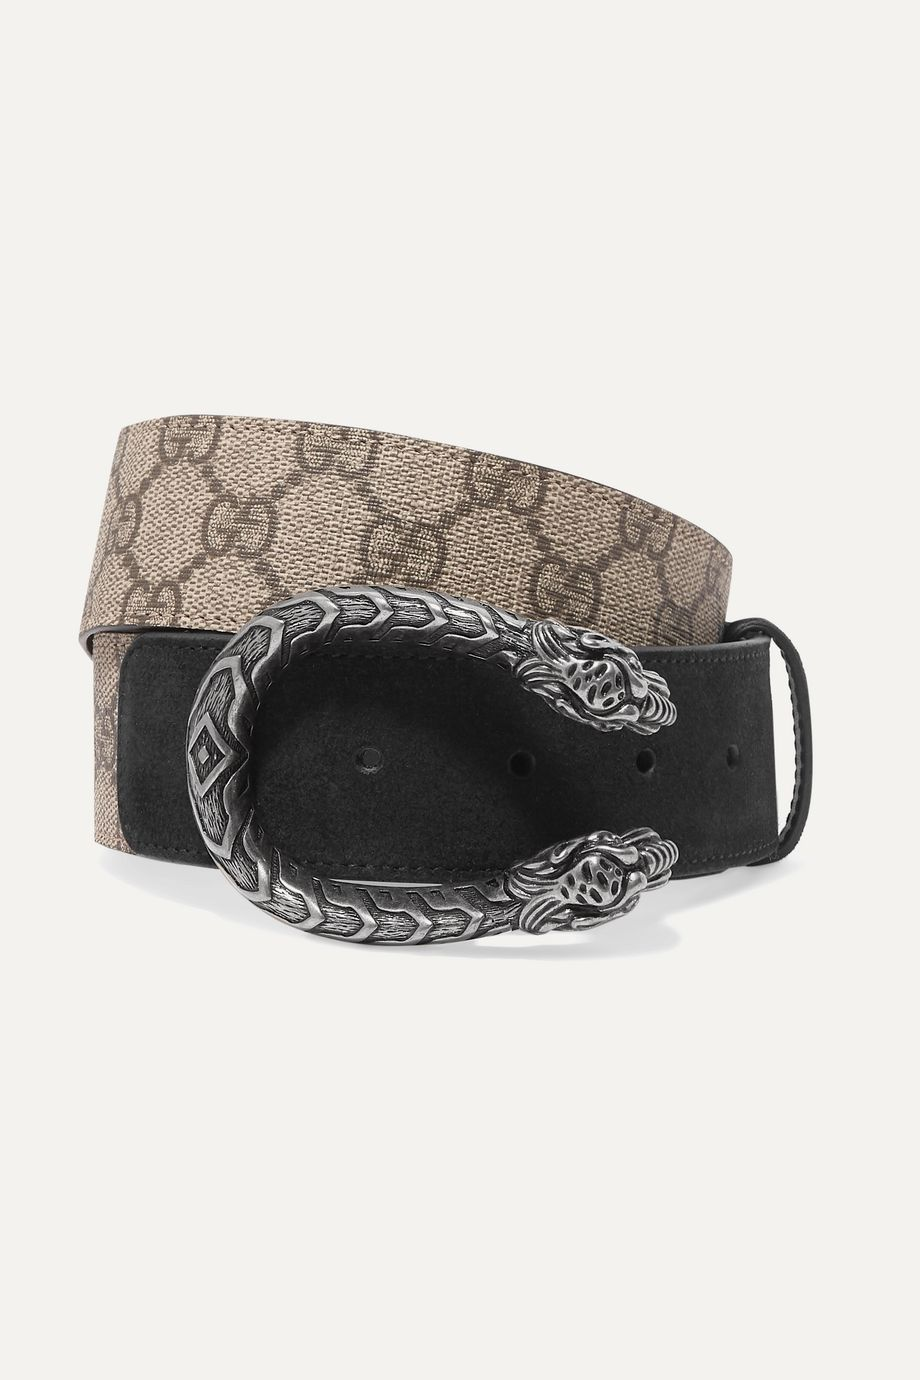 Gucci Dionysus printed coated-canvas and suede belt